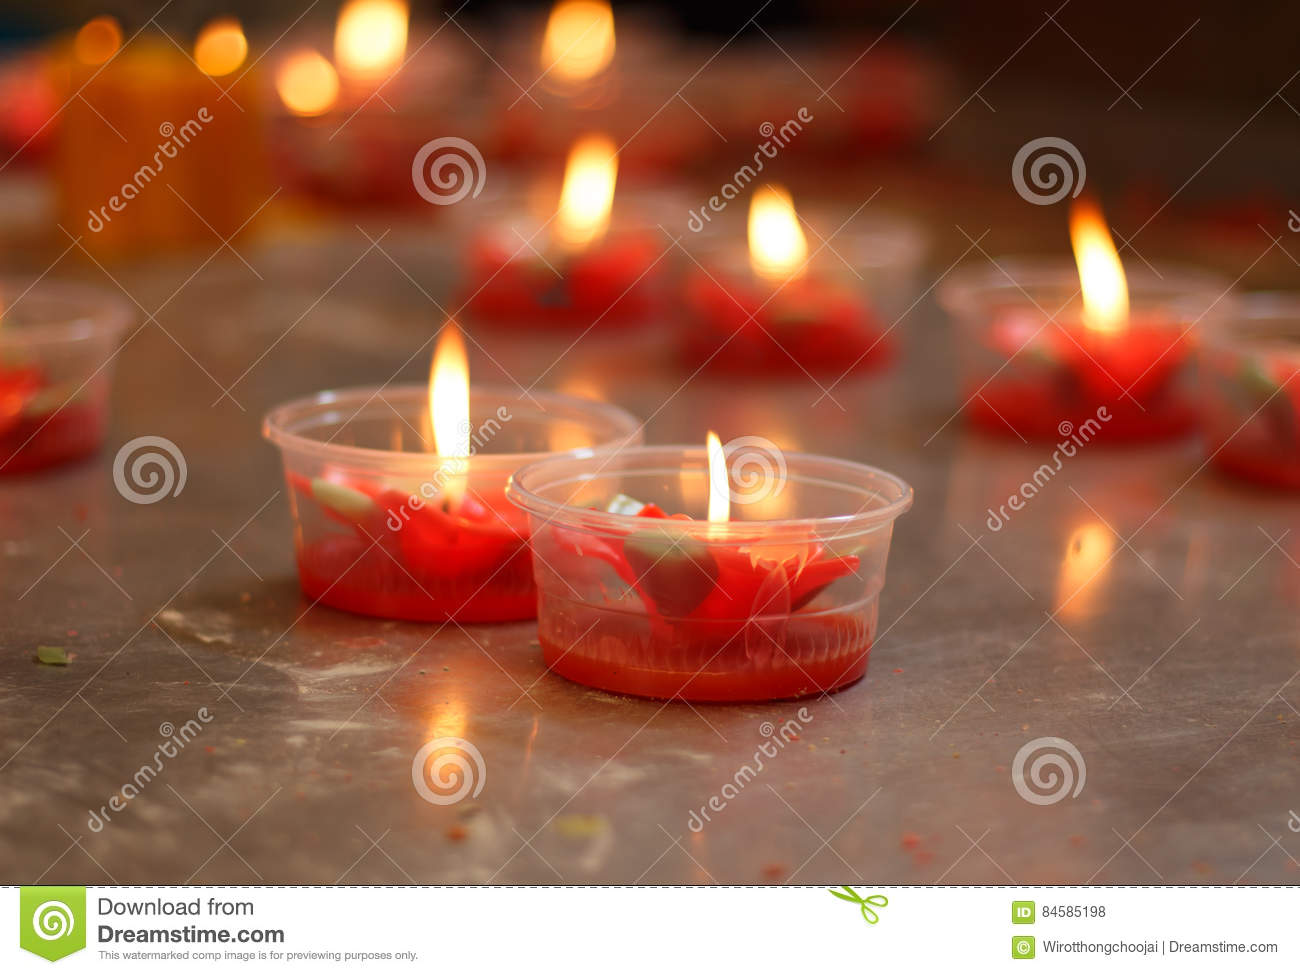 Burning red flower candle at chinese shrine for making merit in